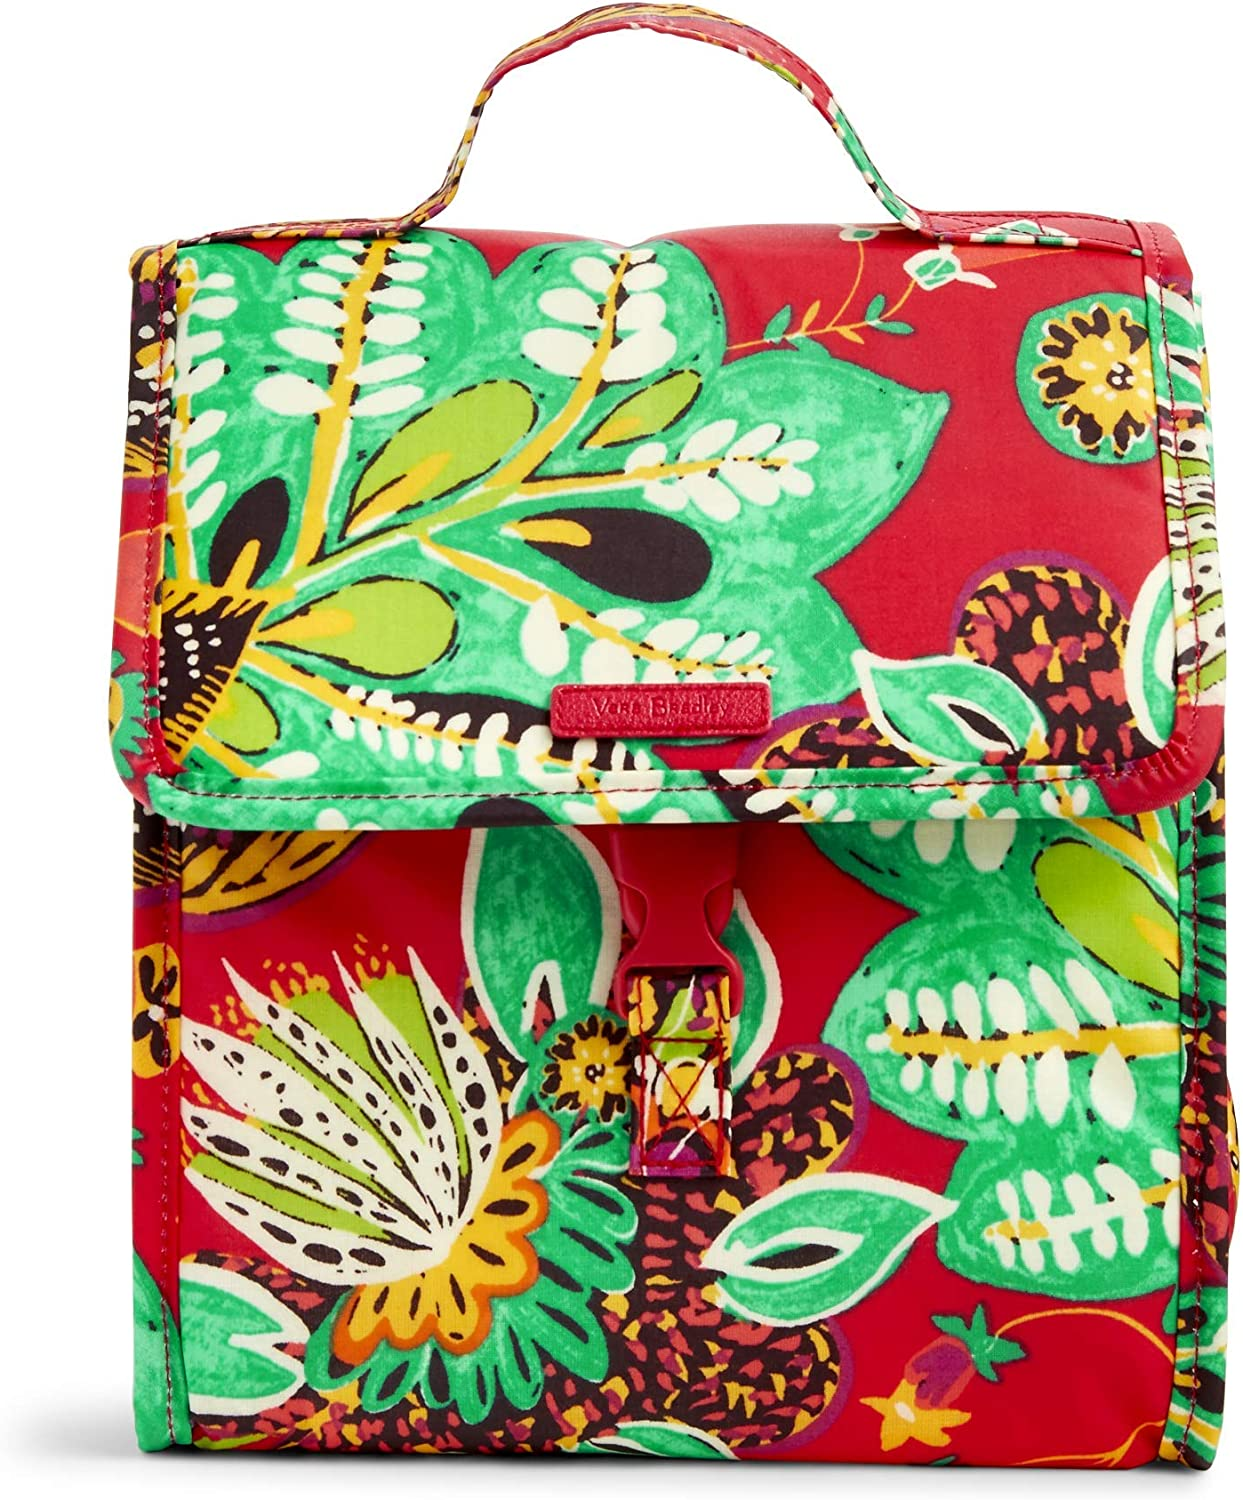 Vera Bradley Women's Signature Cotton Lunch Sack Lunch Bag, Rumba